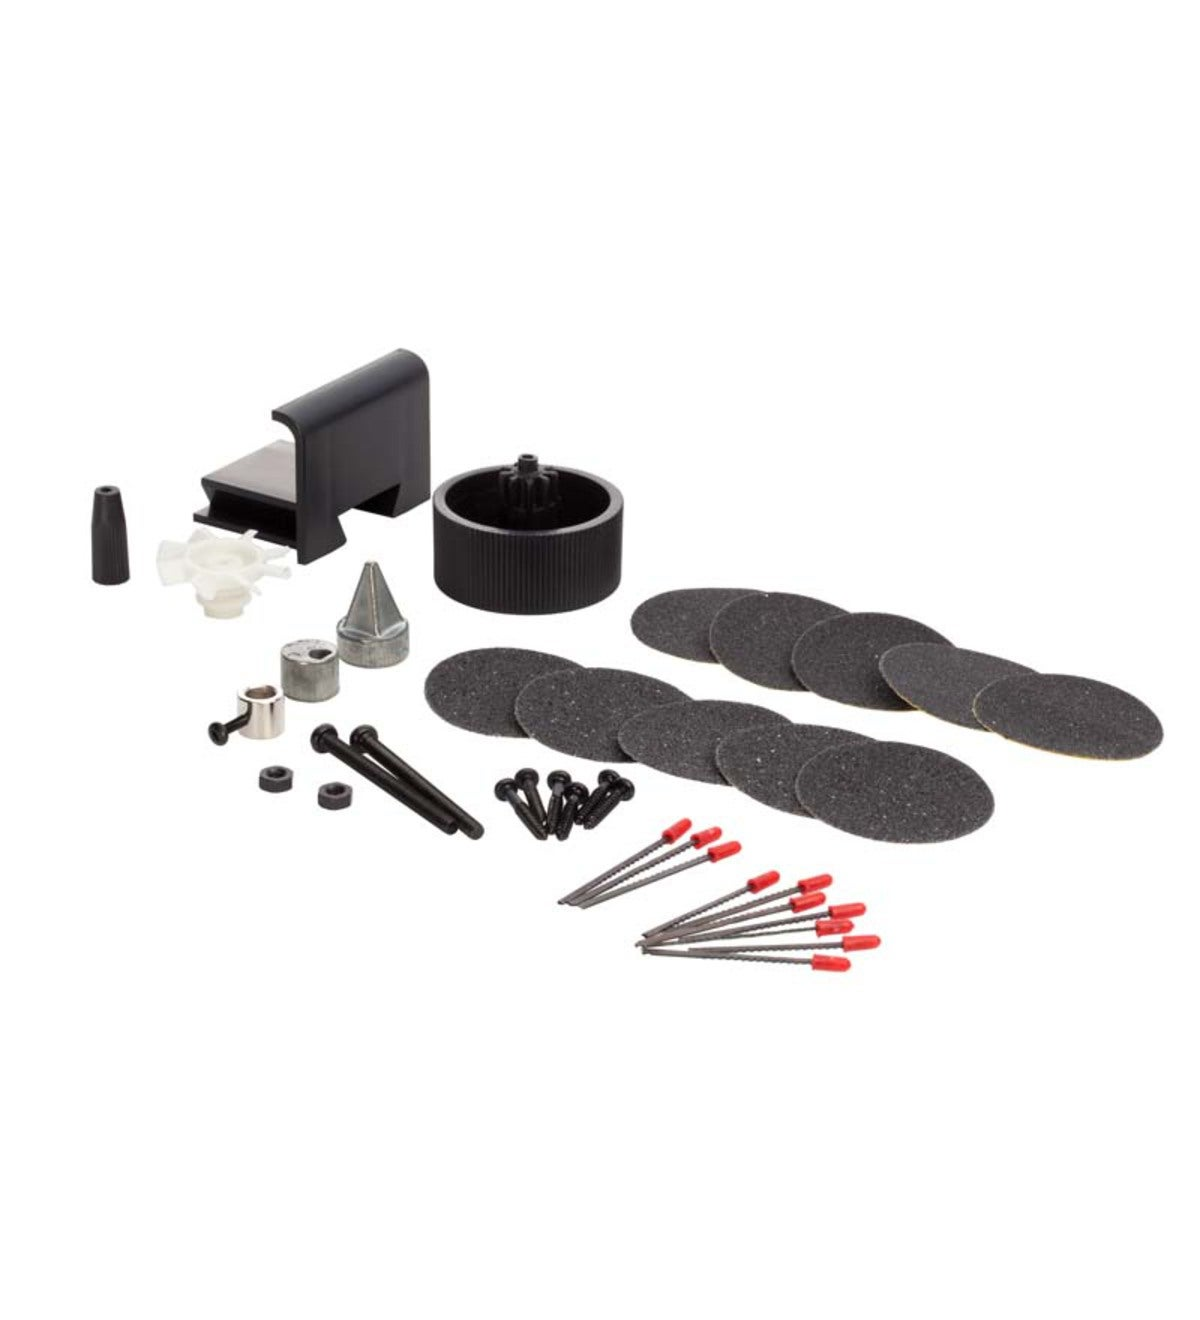 Service Set with Extra Blades, Sanding Disks and Tool Parts